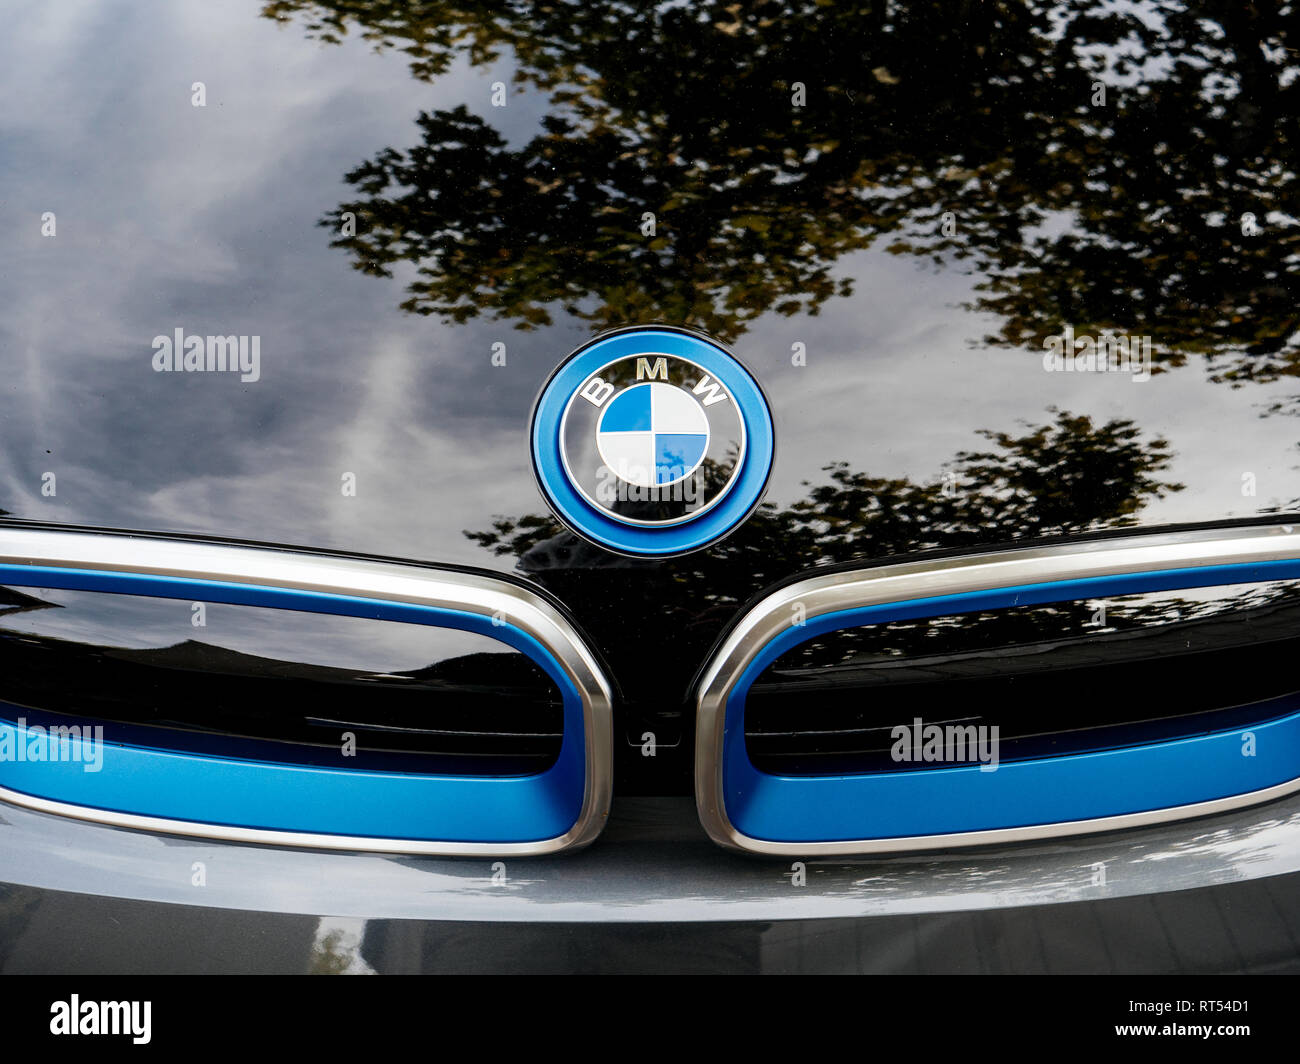 STRASBOURG, FRANCE - MAY 30, 2017: Front view of blue BMW logotype on the electric i1 limousine  - Stock Image